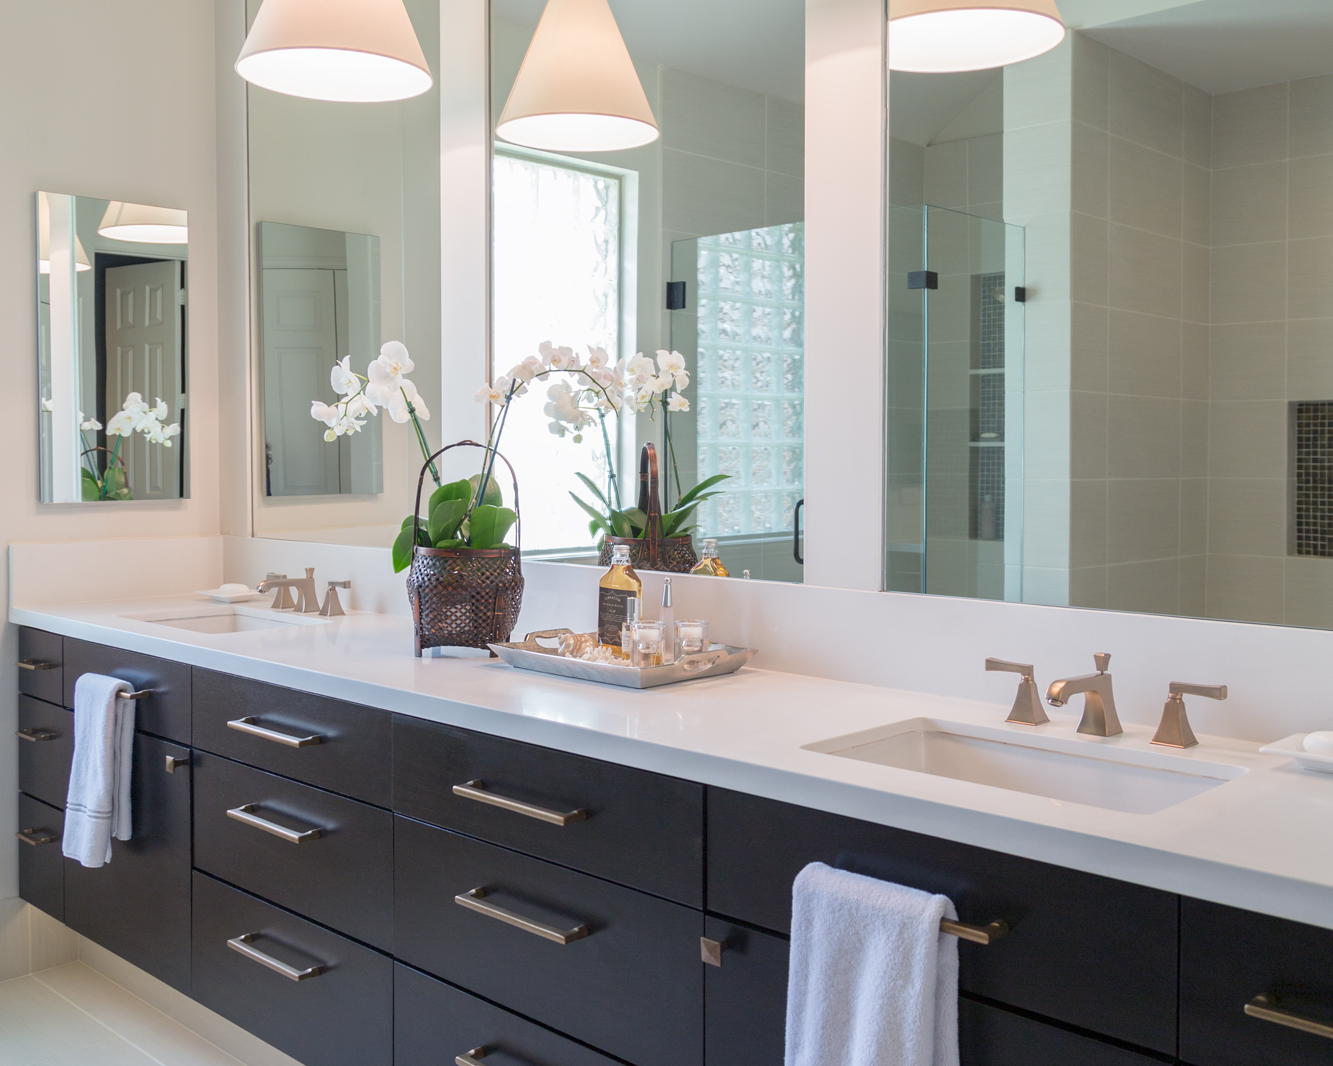 BEFORE & AFTER: A Master Bathroom Remodel Surprises Everyone With